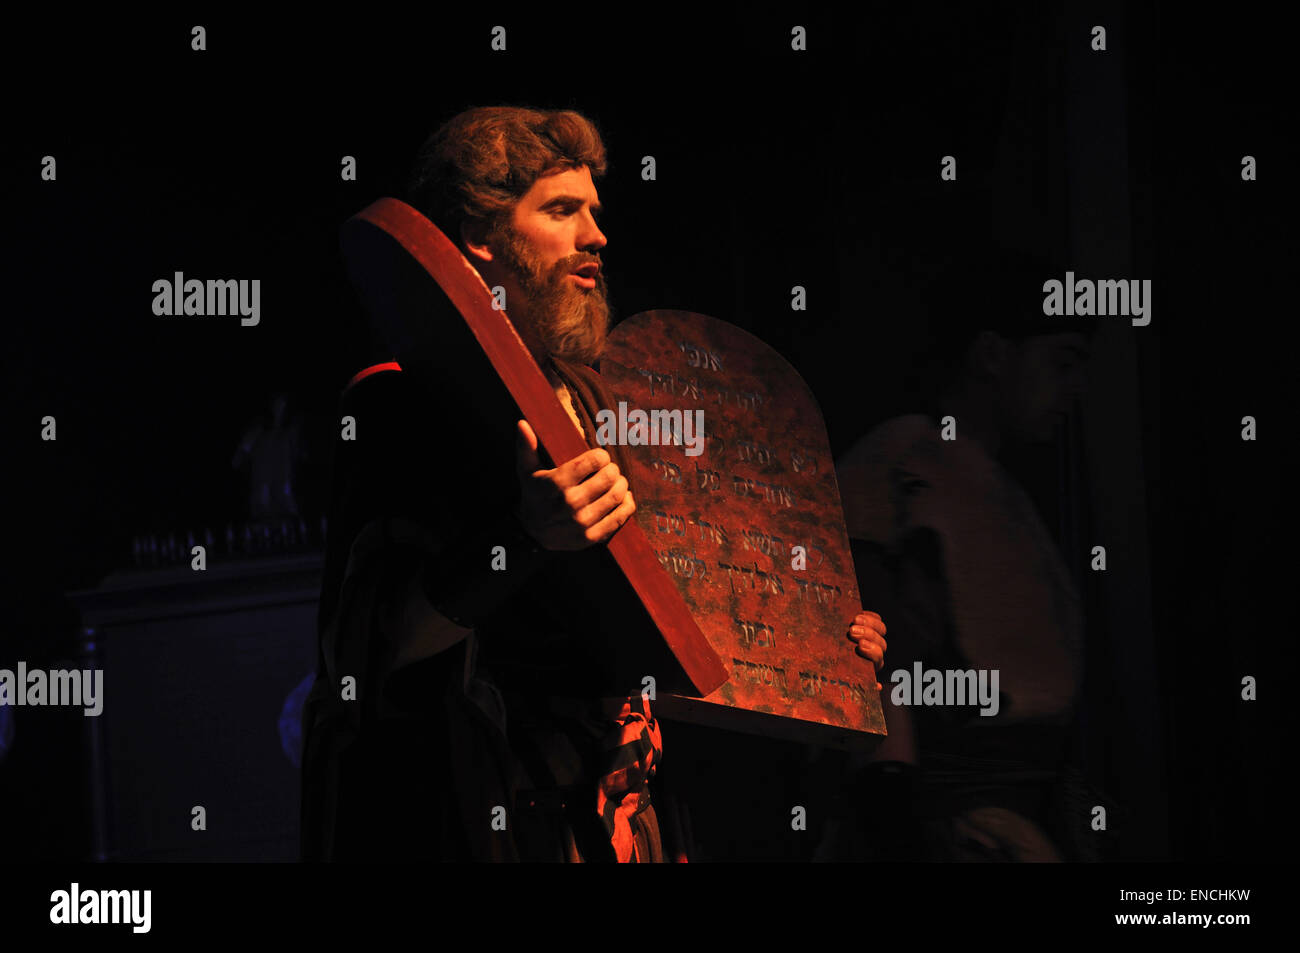 Actor dressed as Moses holding stage props of the Biblical Ten Commandments - Stock Image